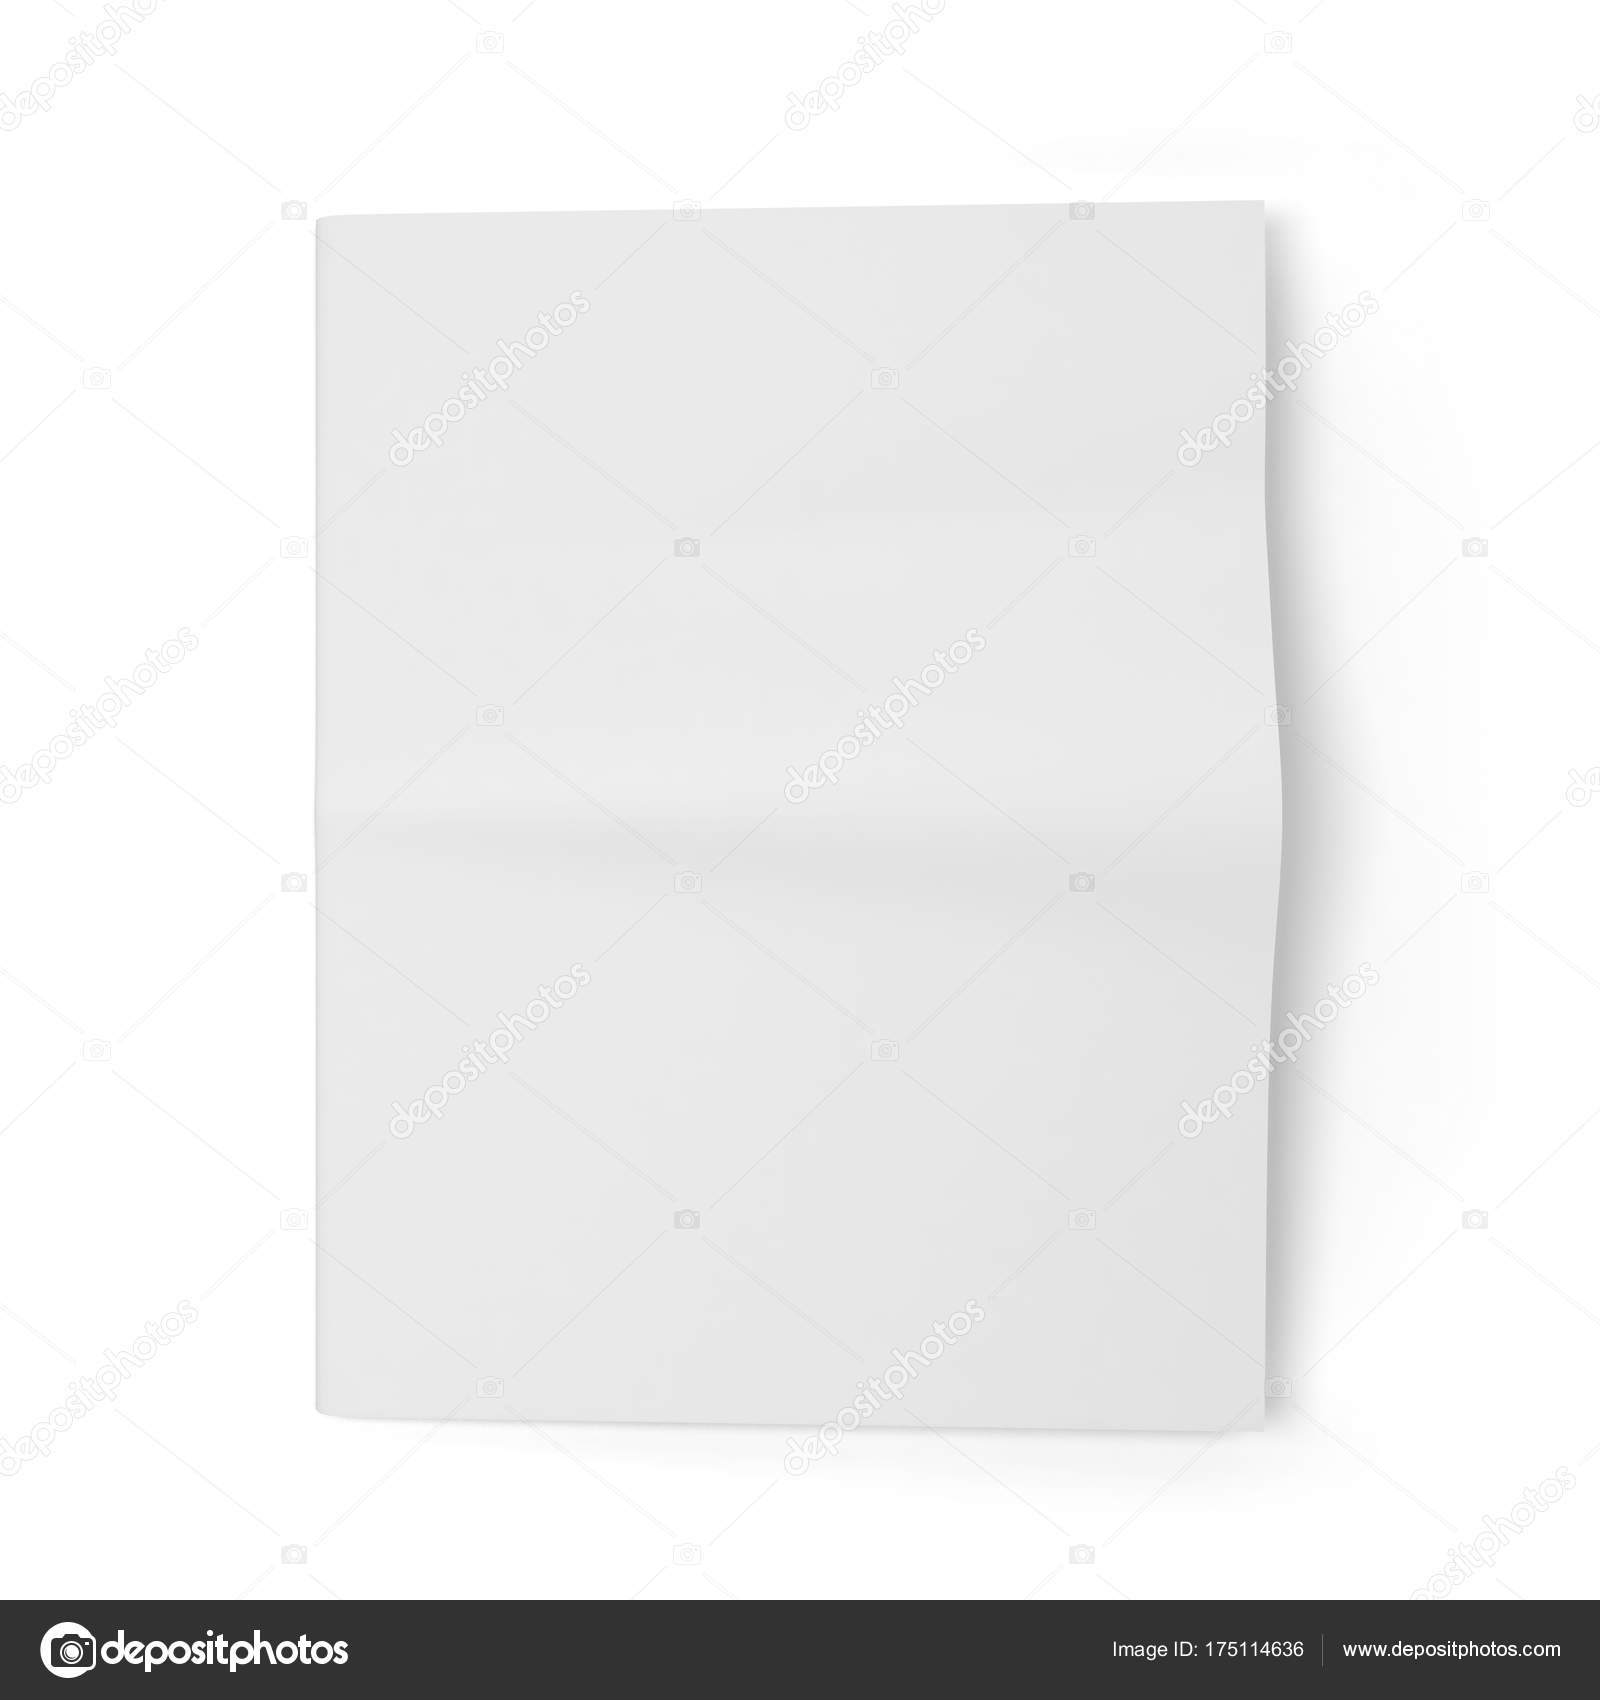 Blank Newspaper Template Stock Image